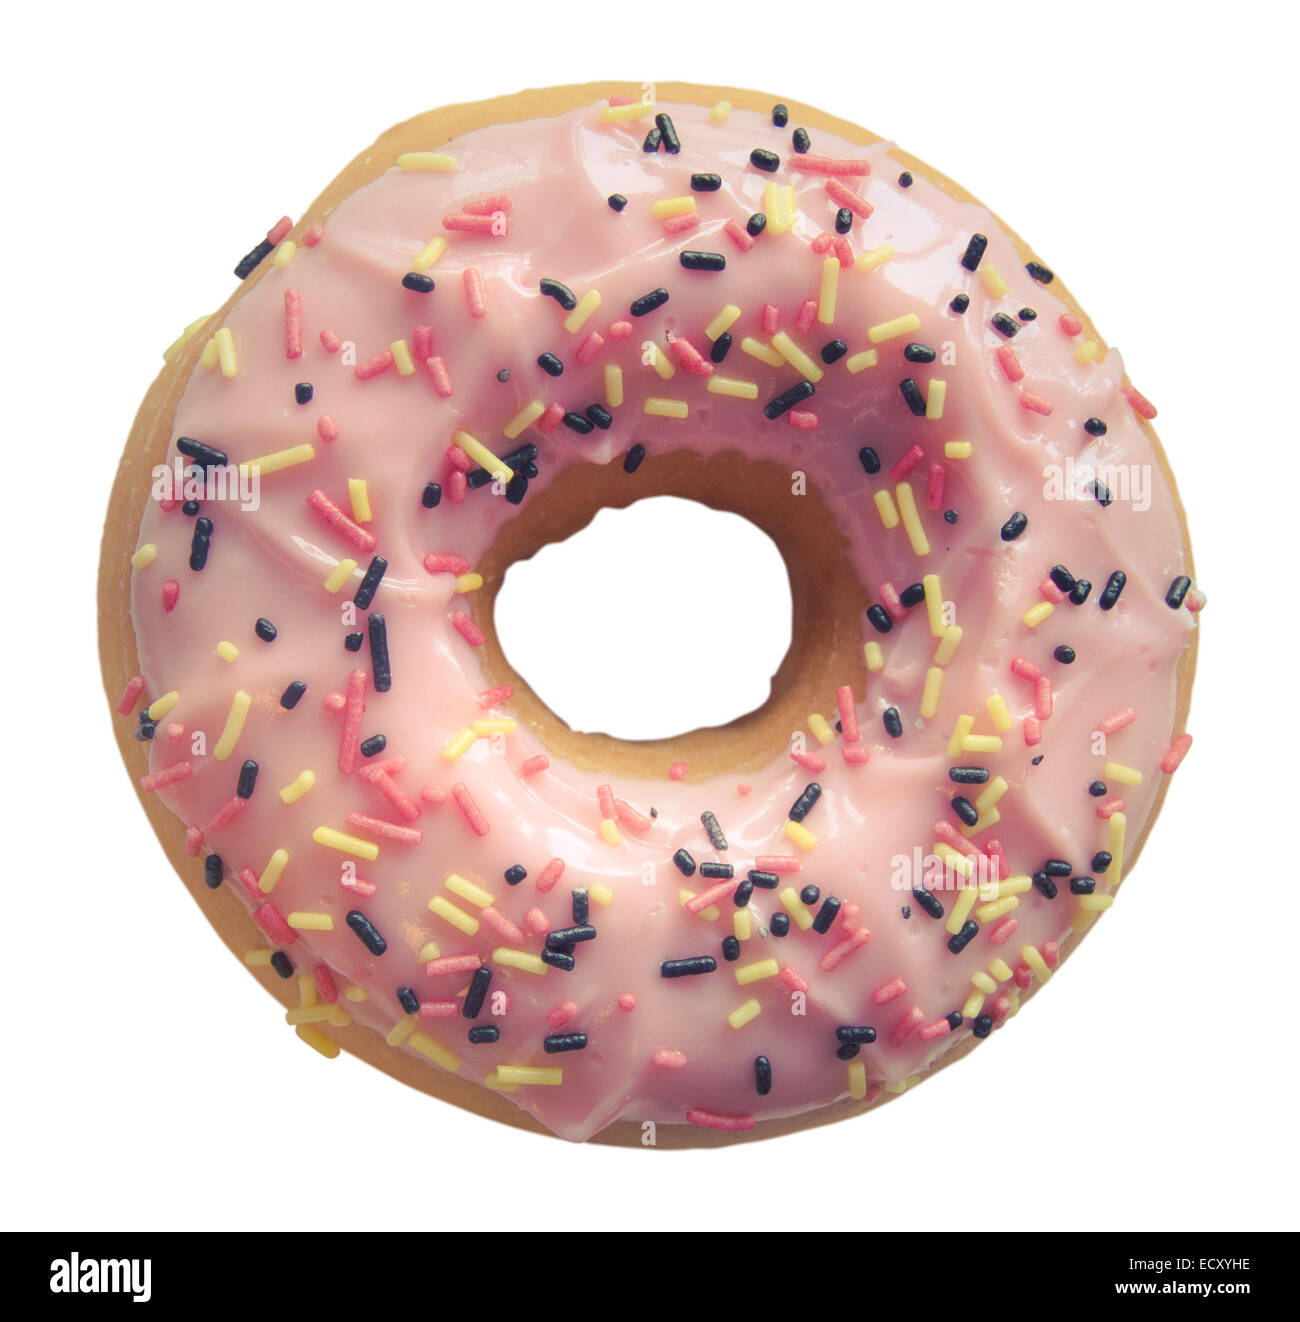 Isolated Pink Donut With Sprinkles - Stock Image